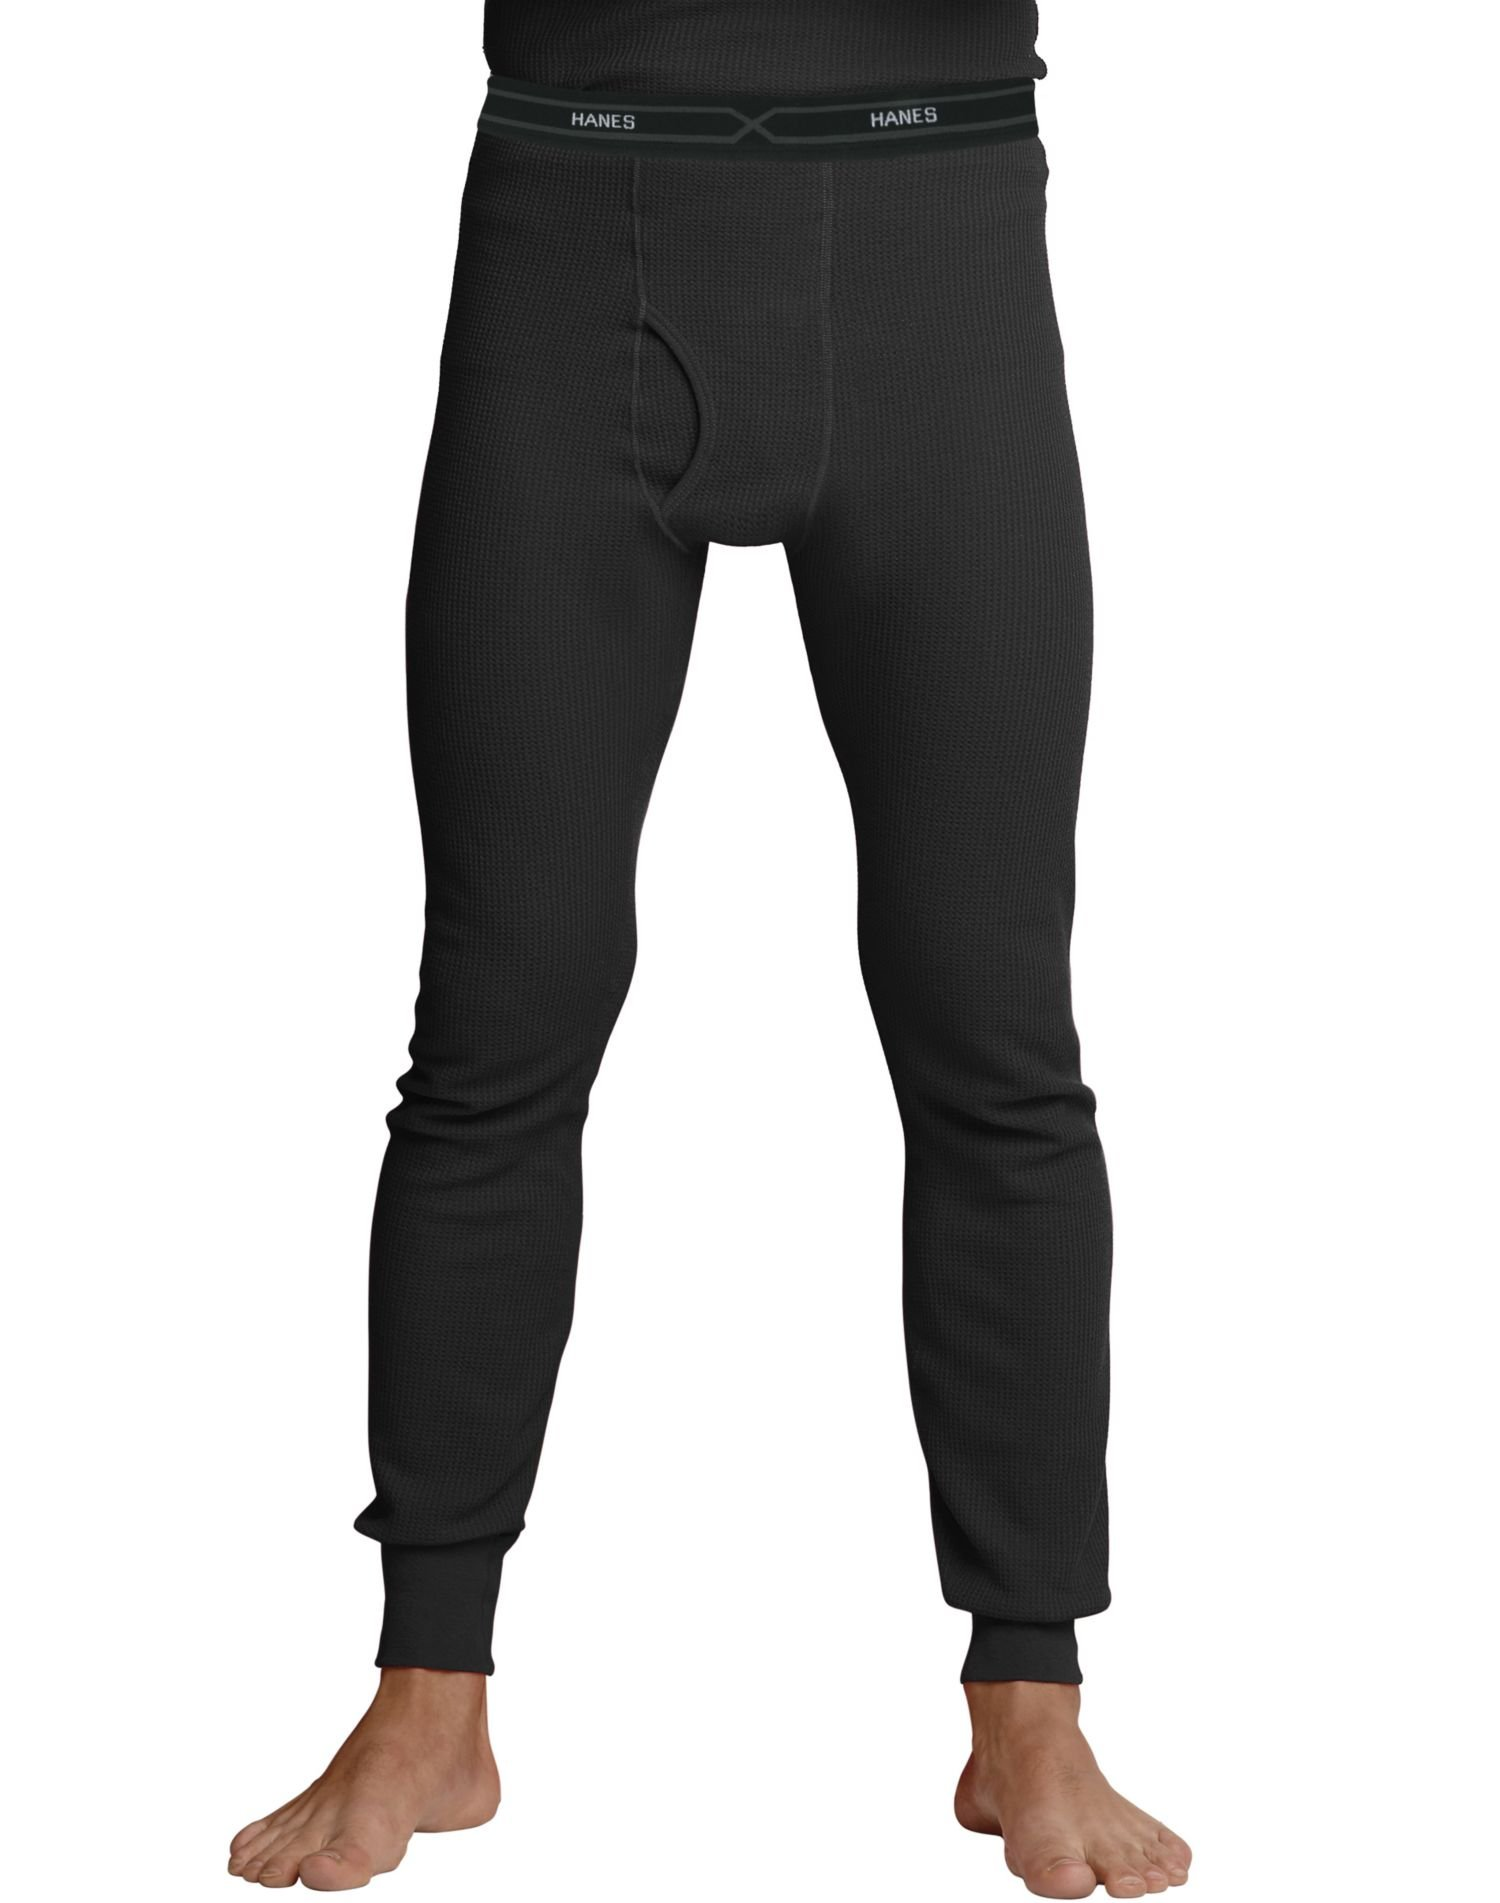 Hanes Men's Big Red Label X-Temp Thermal Pant, Black, X-Large by Hanes